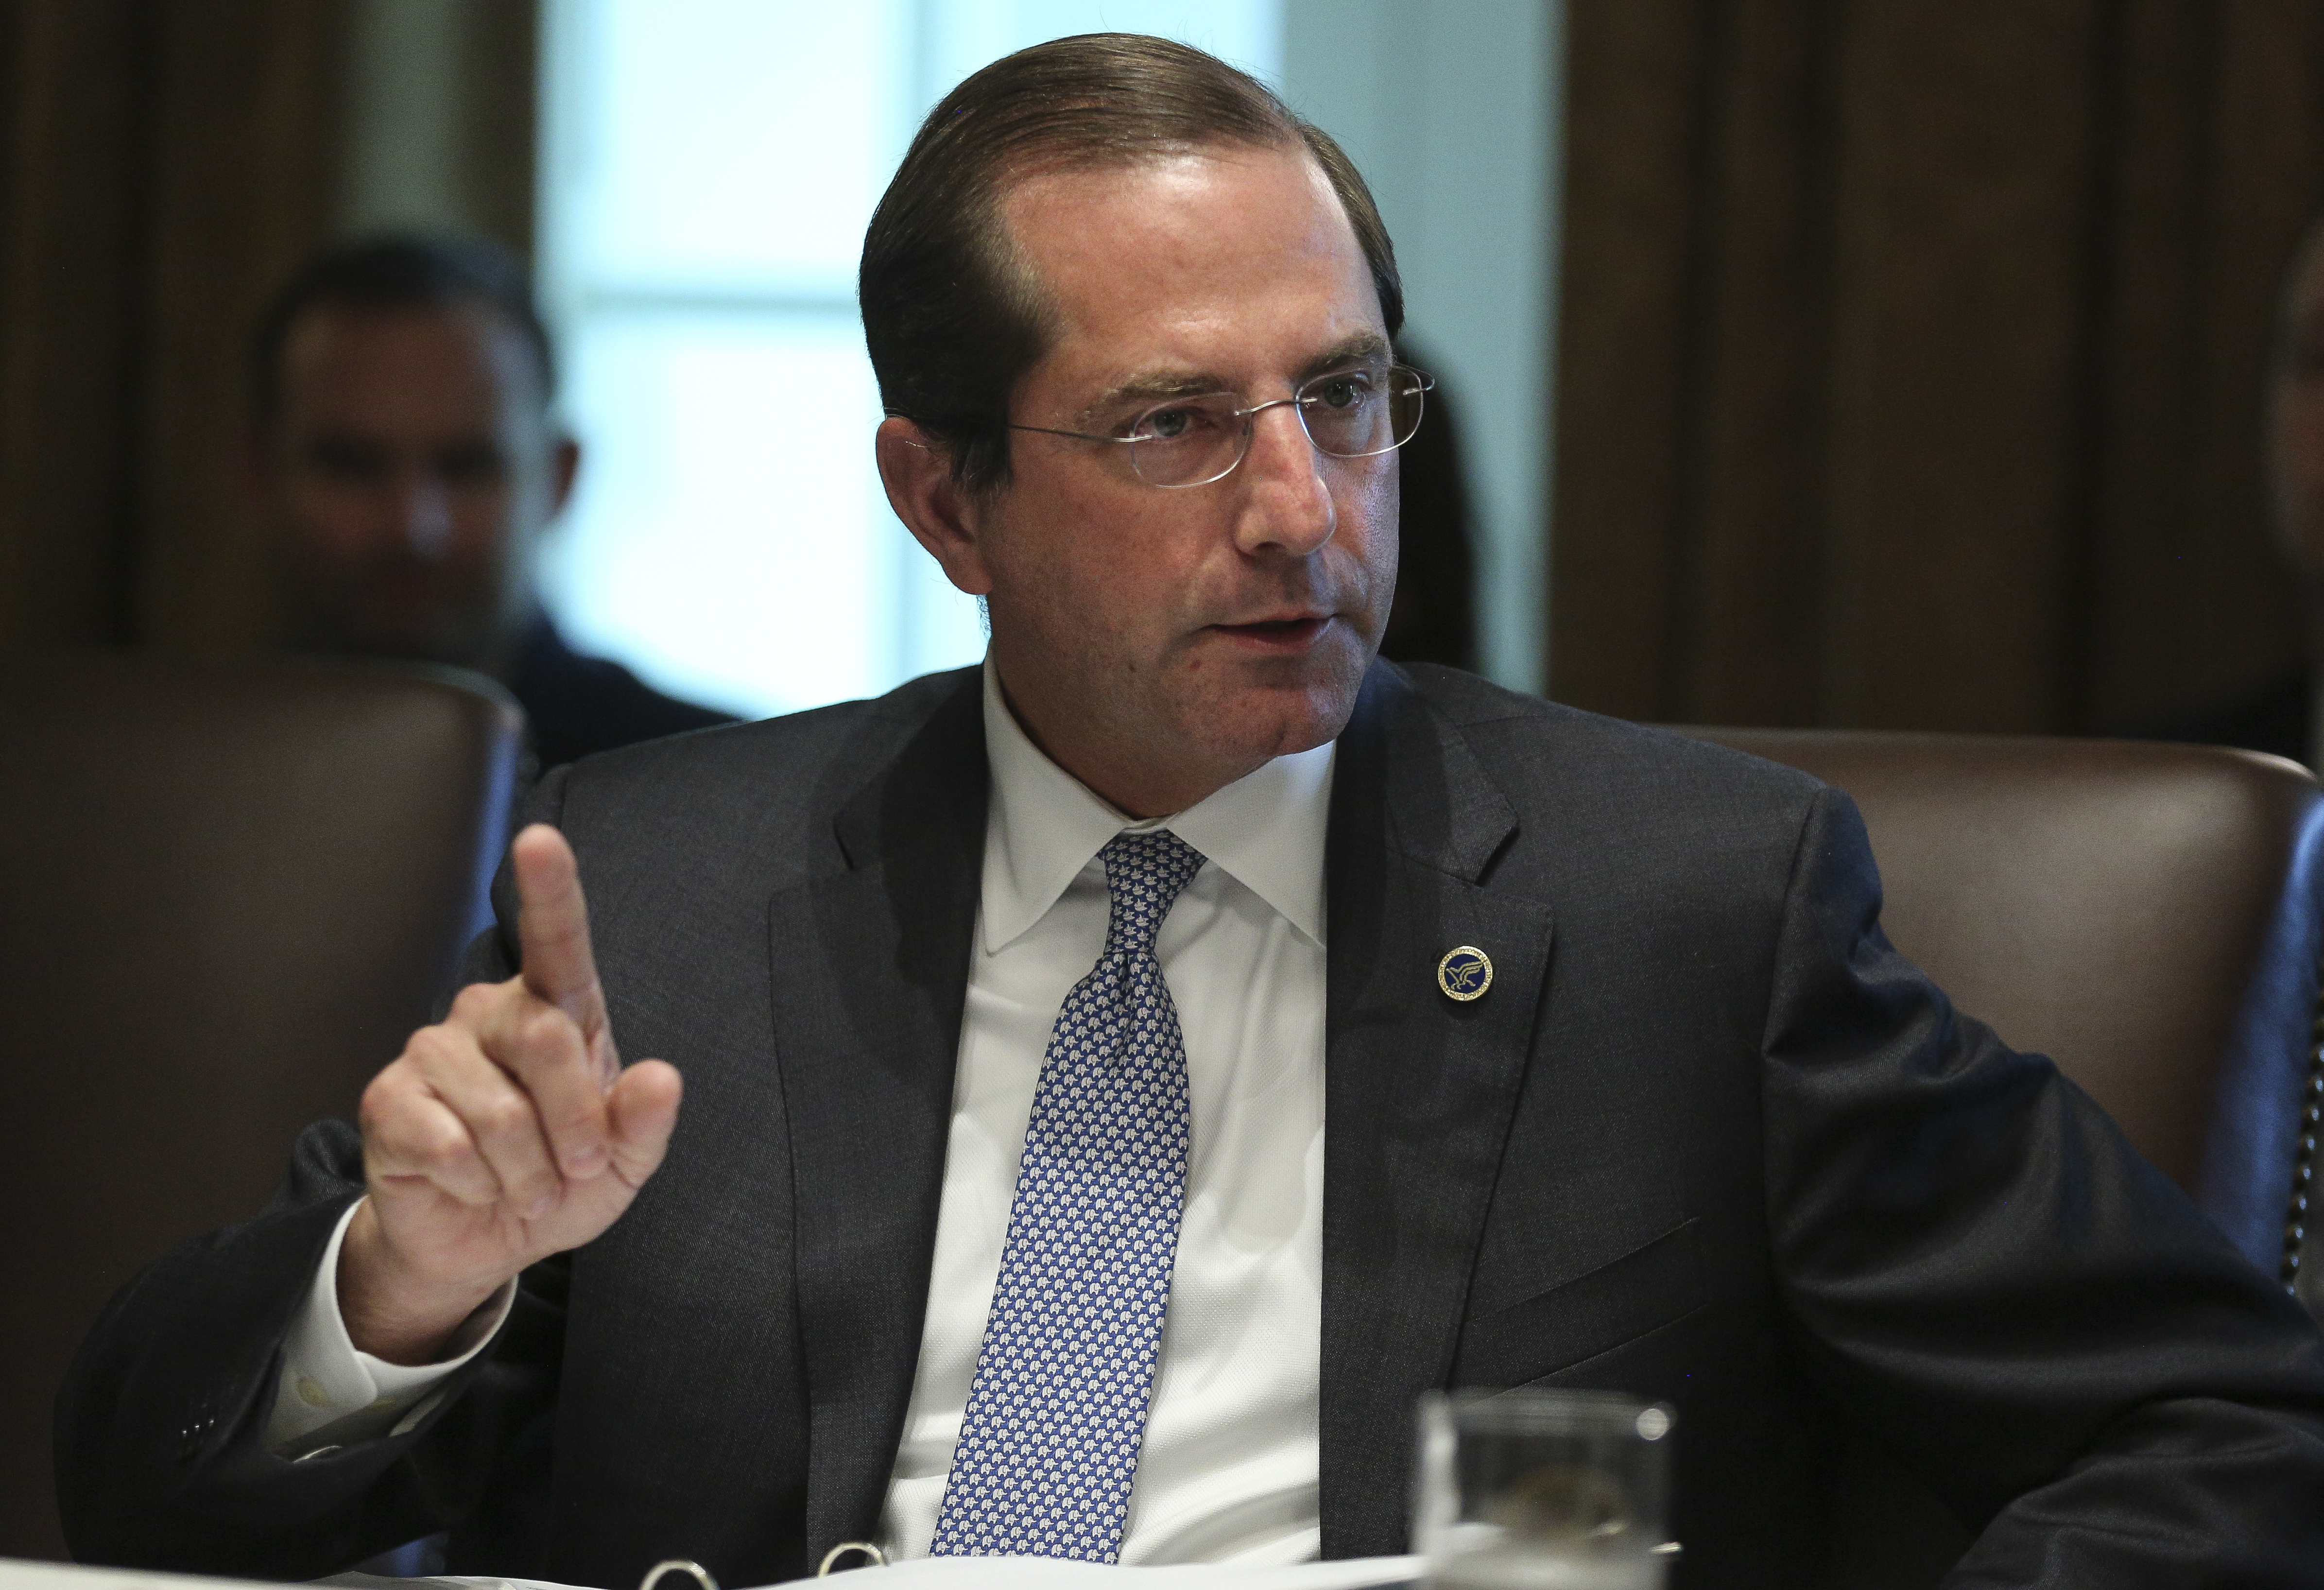 Azar arrives in Taiwan, marking the most senior US visit in decades